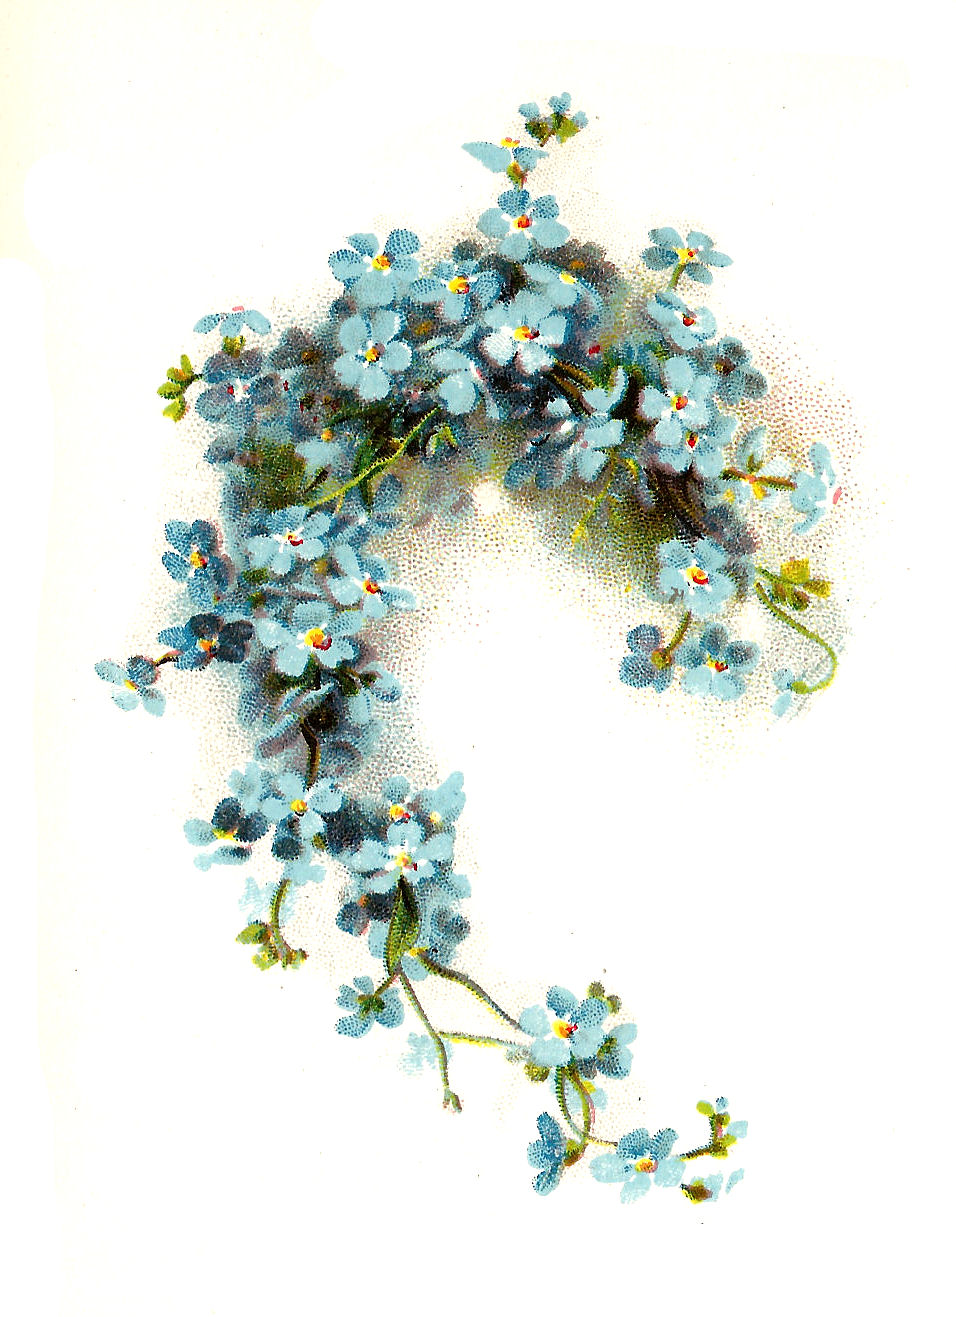 clip art forget me not flower - photo #14